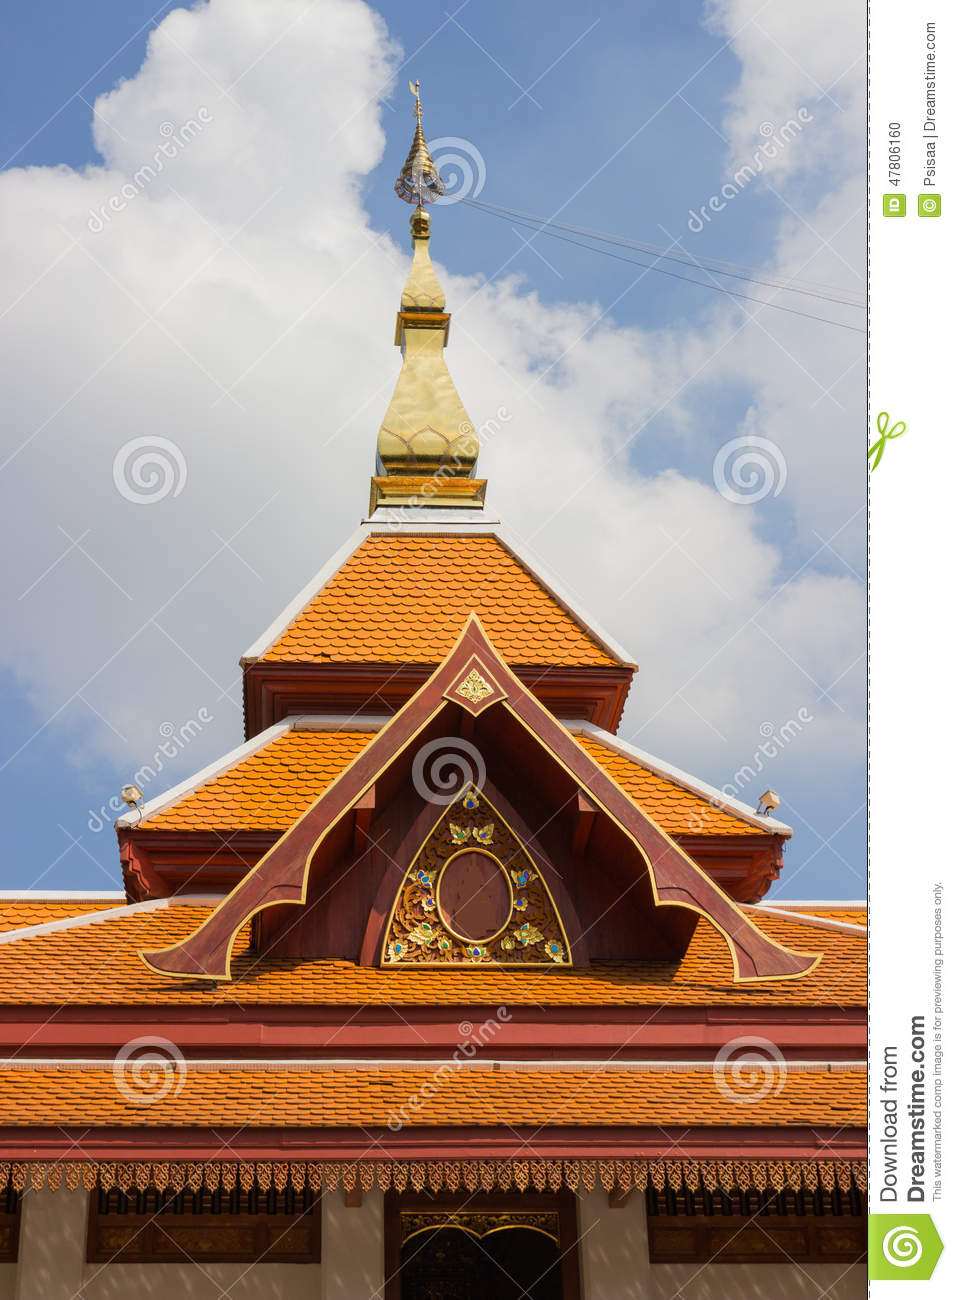 Design Of Asian Temple Roof Stock Photo Image Of Place